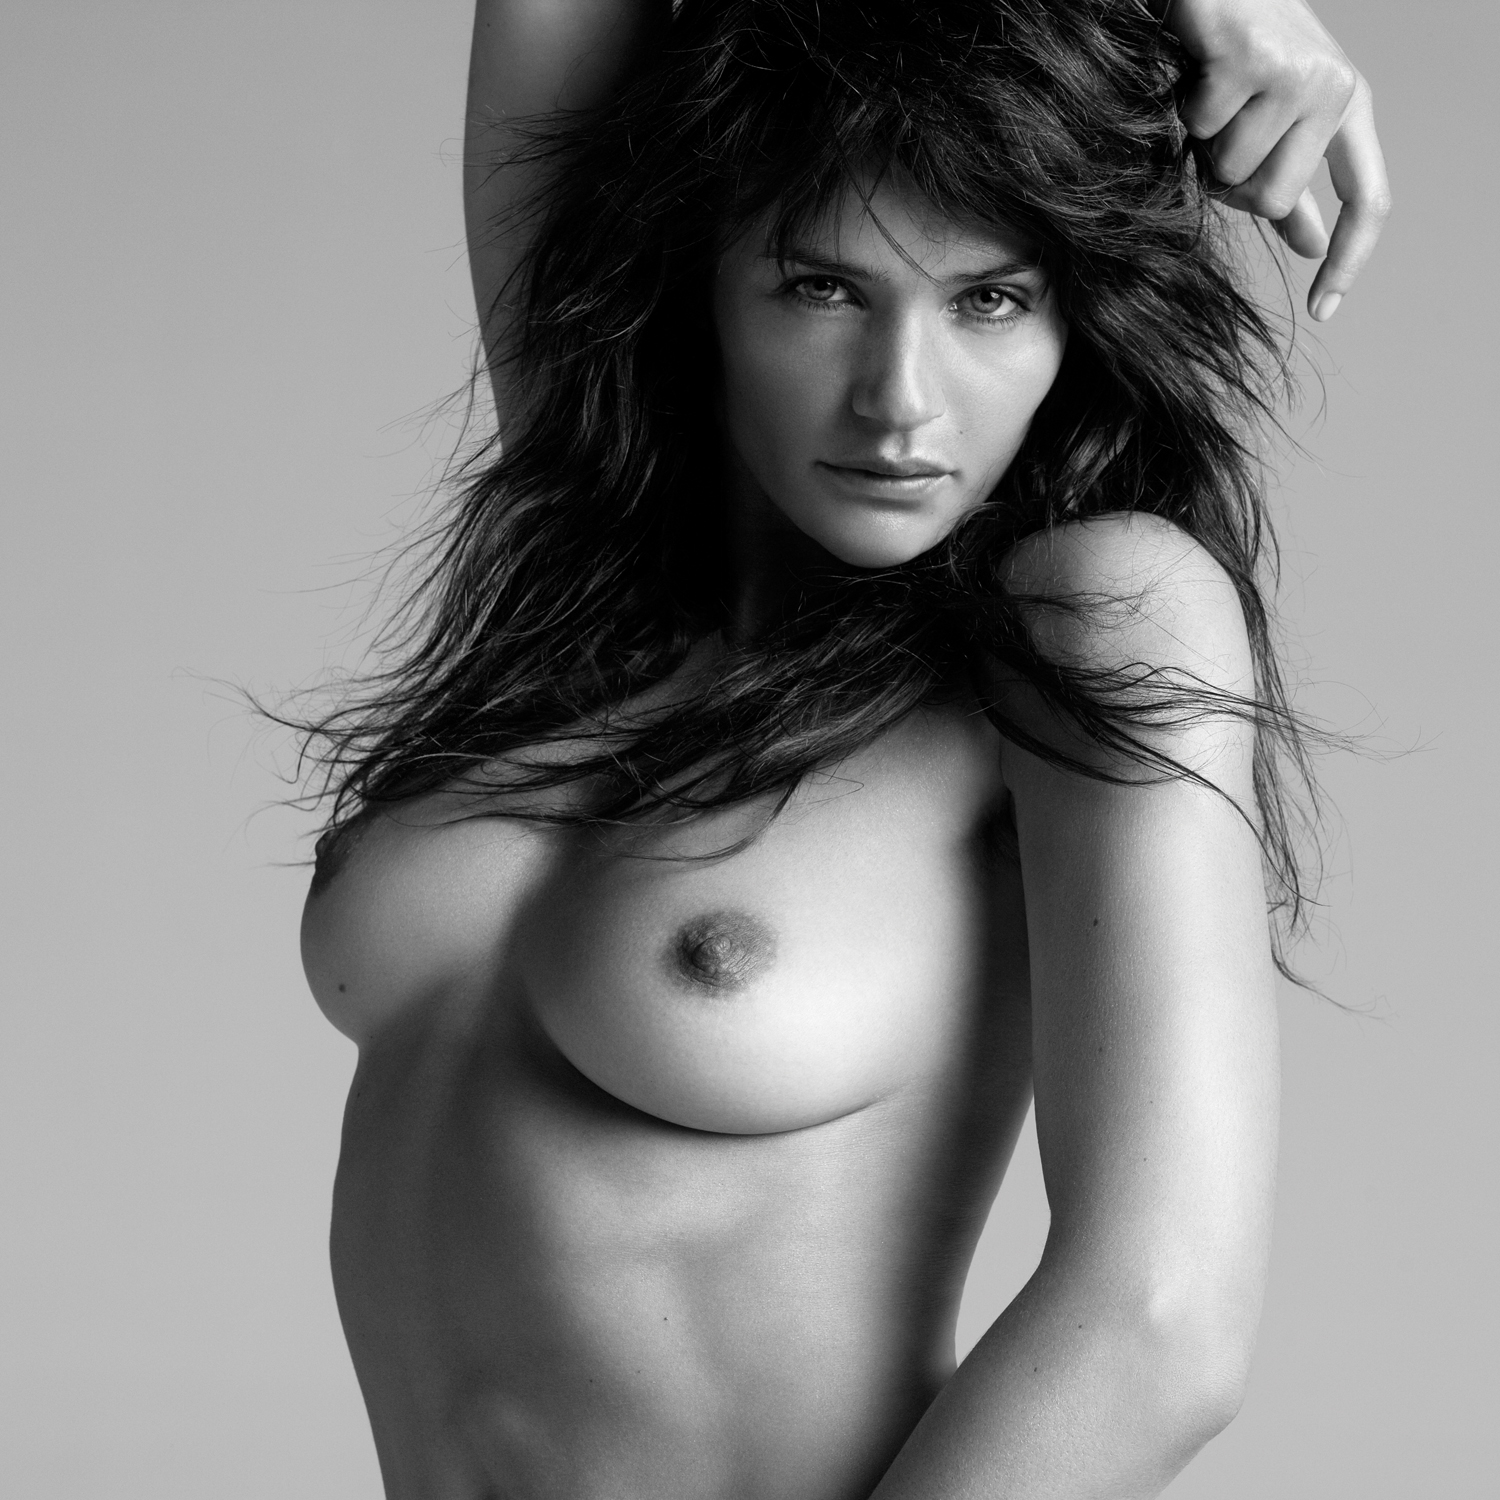 most-famous-nude-photos